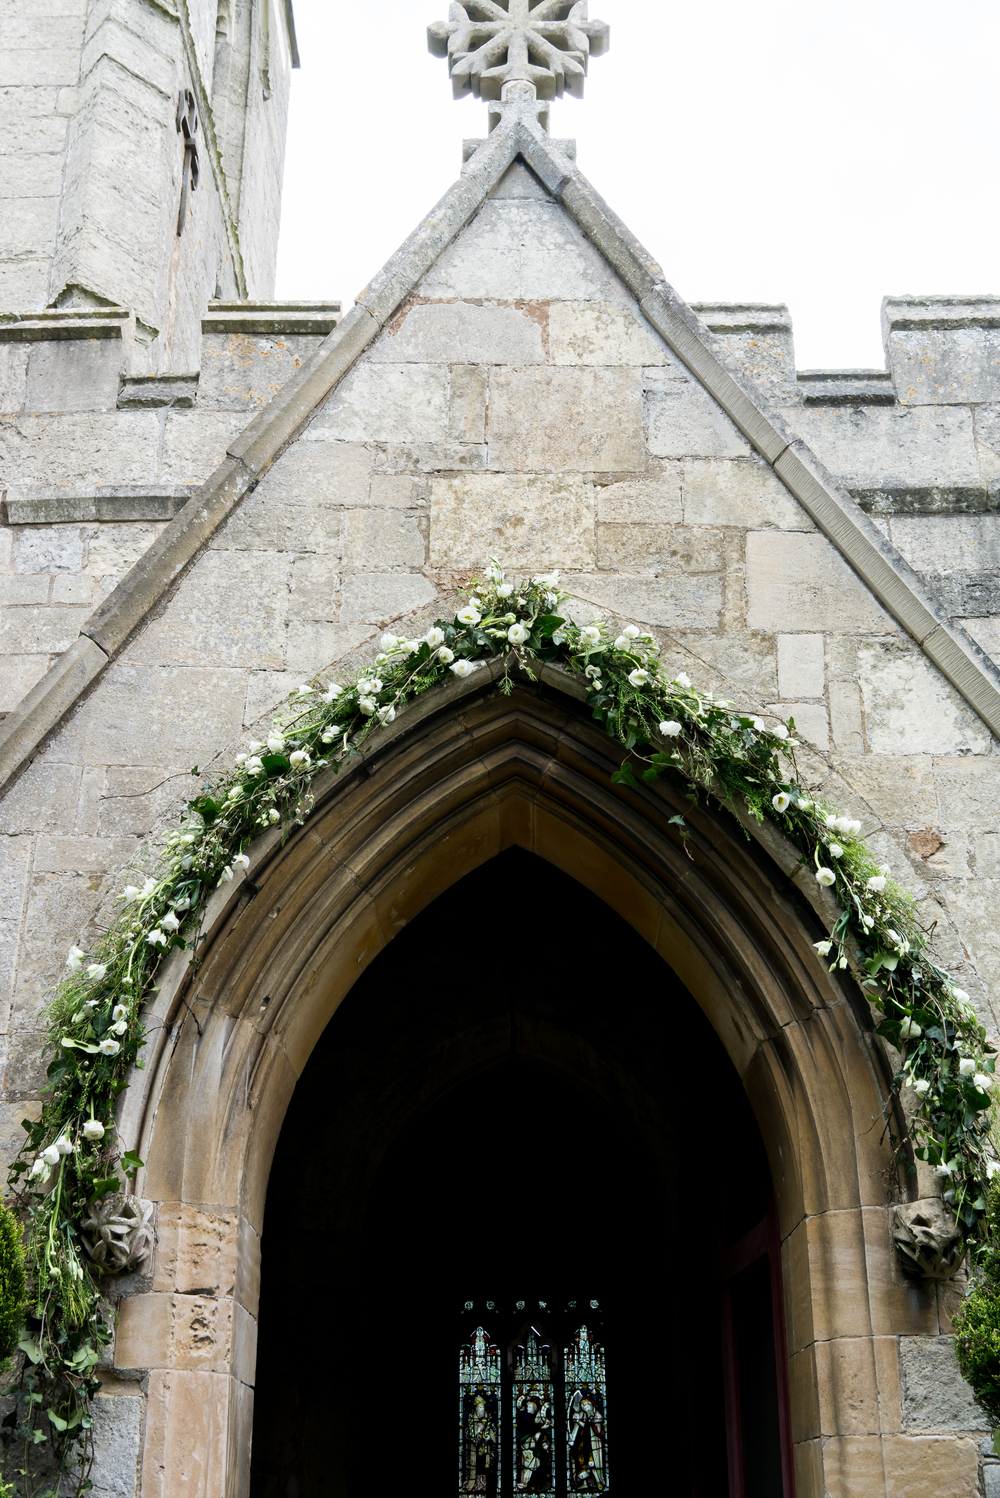 From £25 Venue dressing £25 - £1000+  Depending on extent of dressing, intricacy & flowers